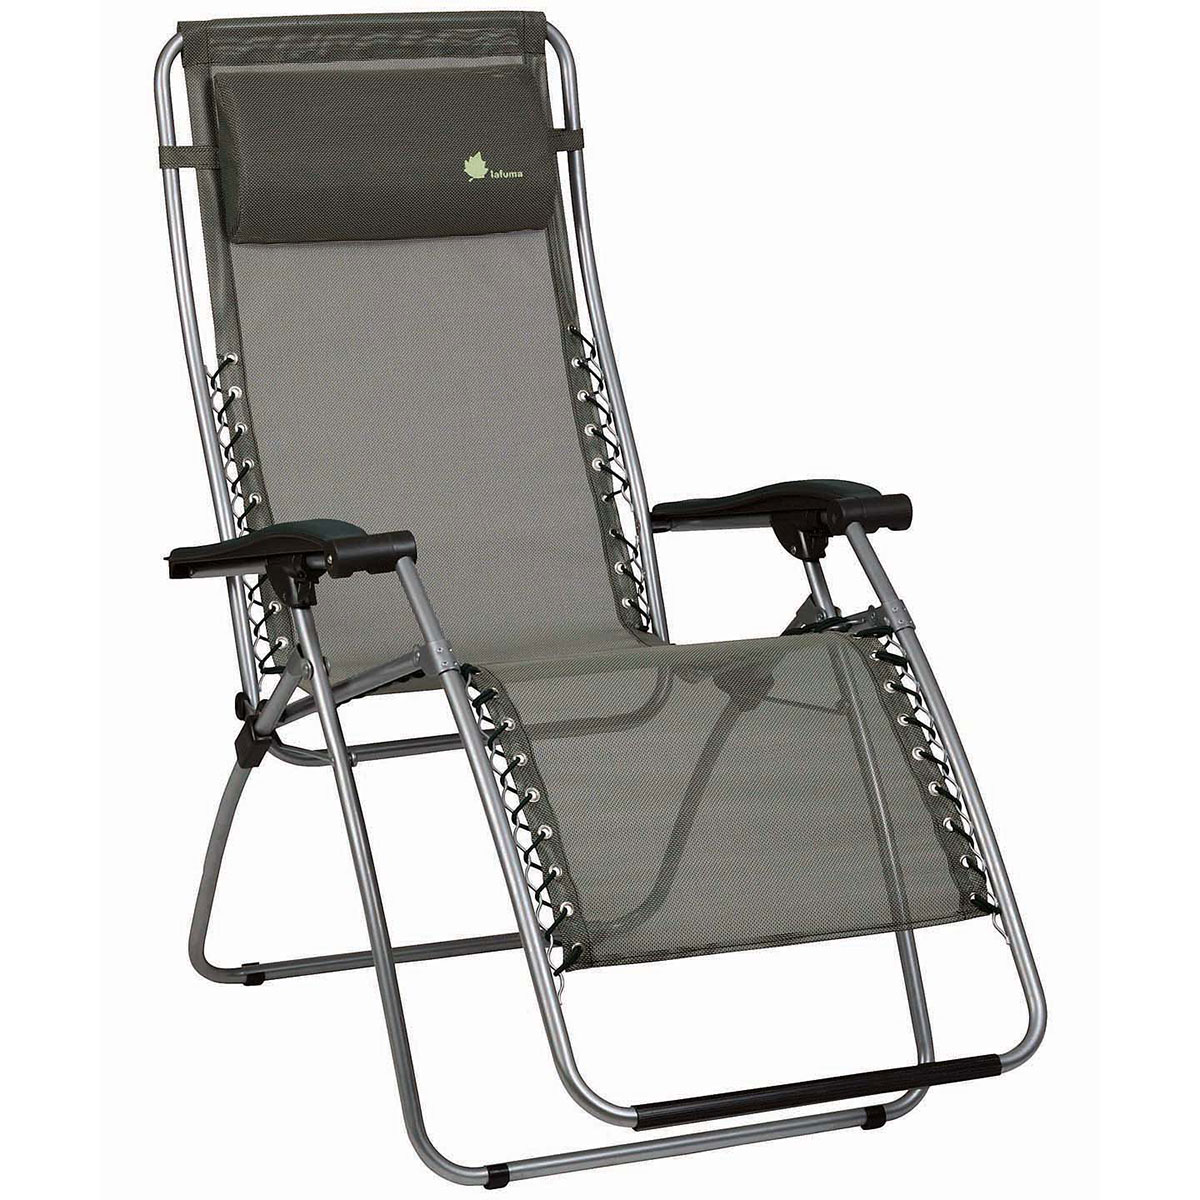 Ergonomic patio lounge chairs | Interior & Exterior Doors